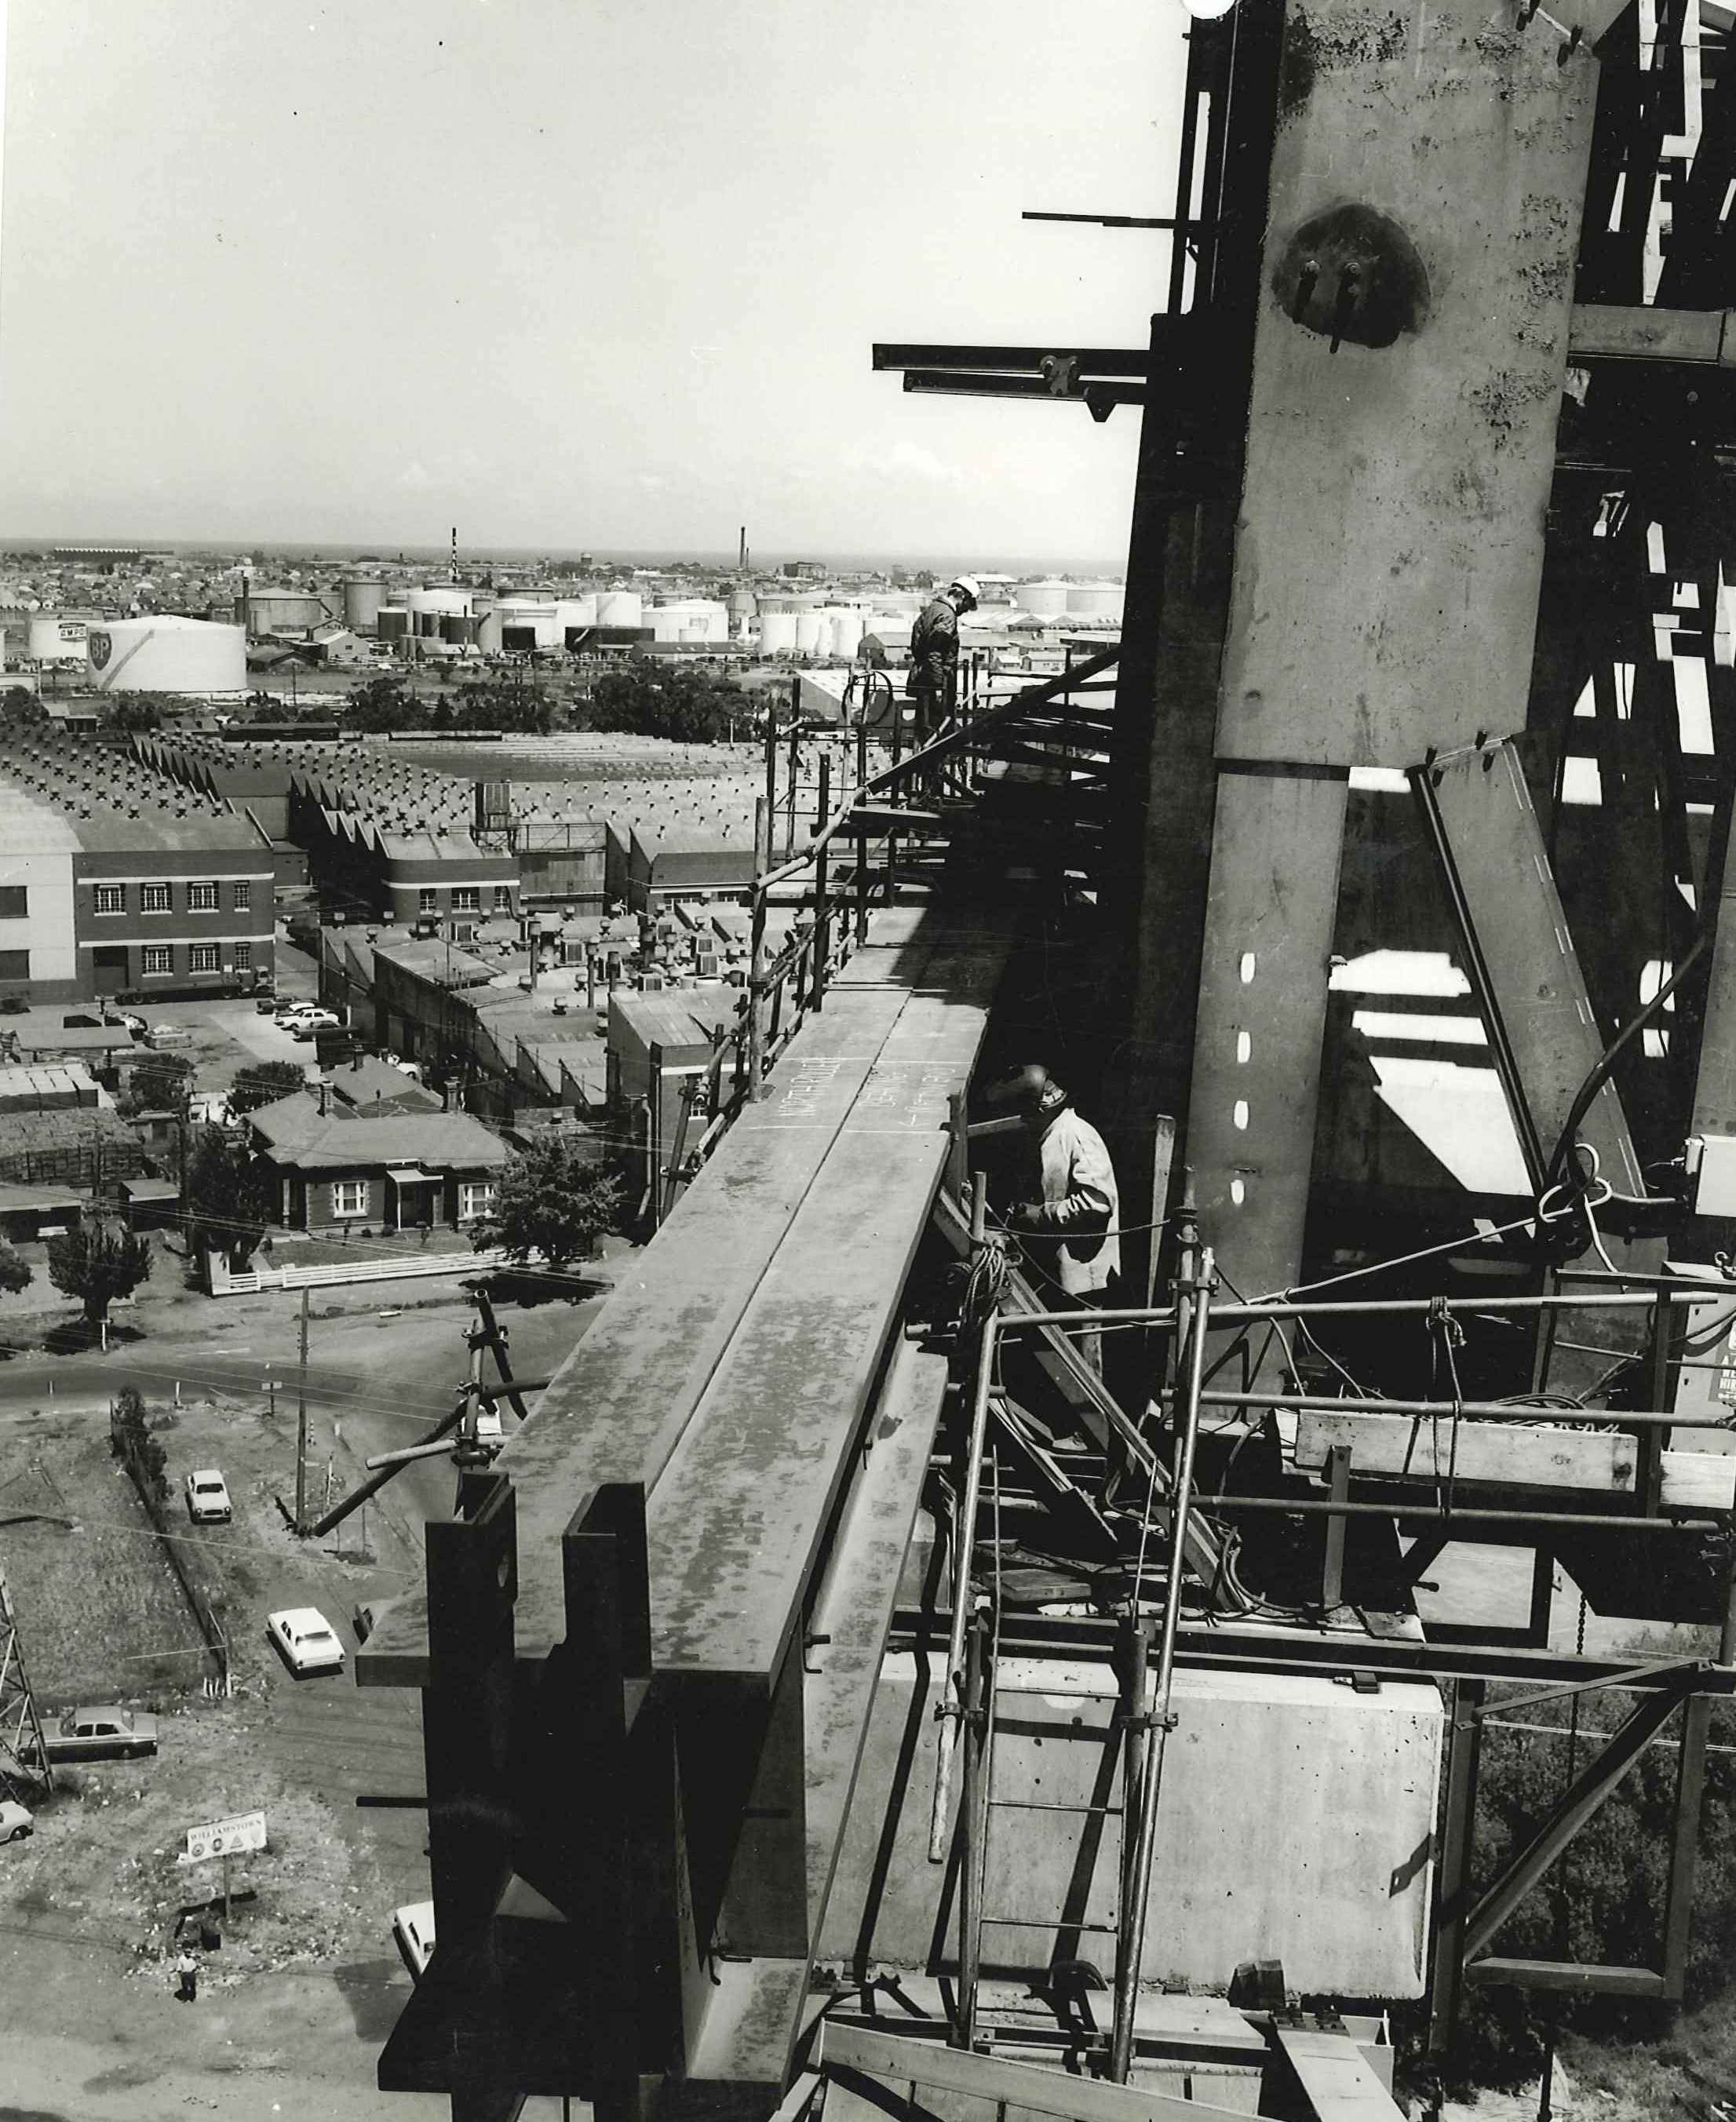 View from the West Gate Bridge prior to collapse